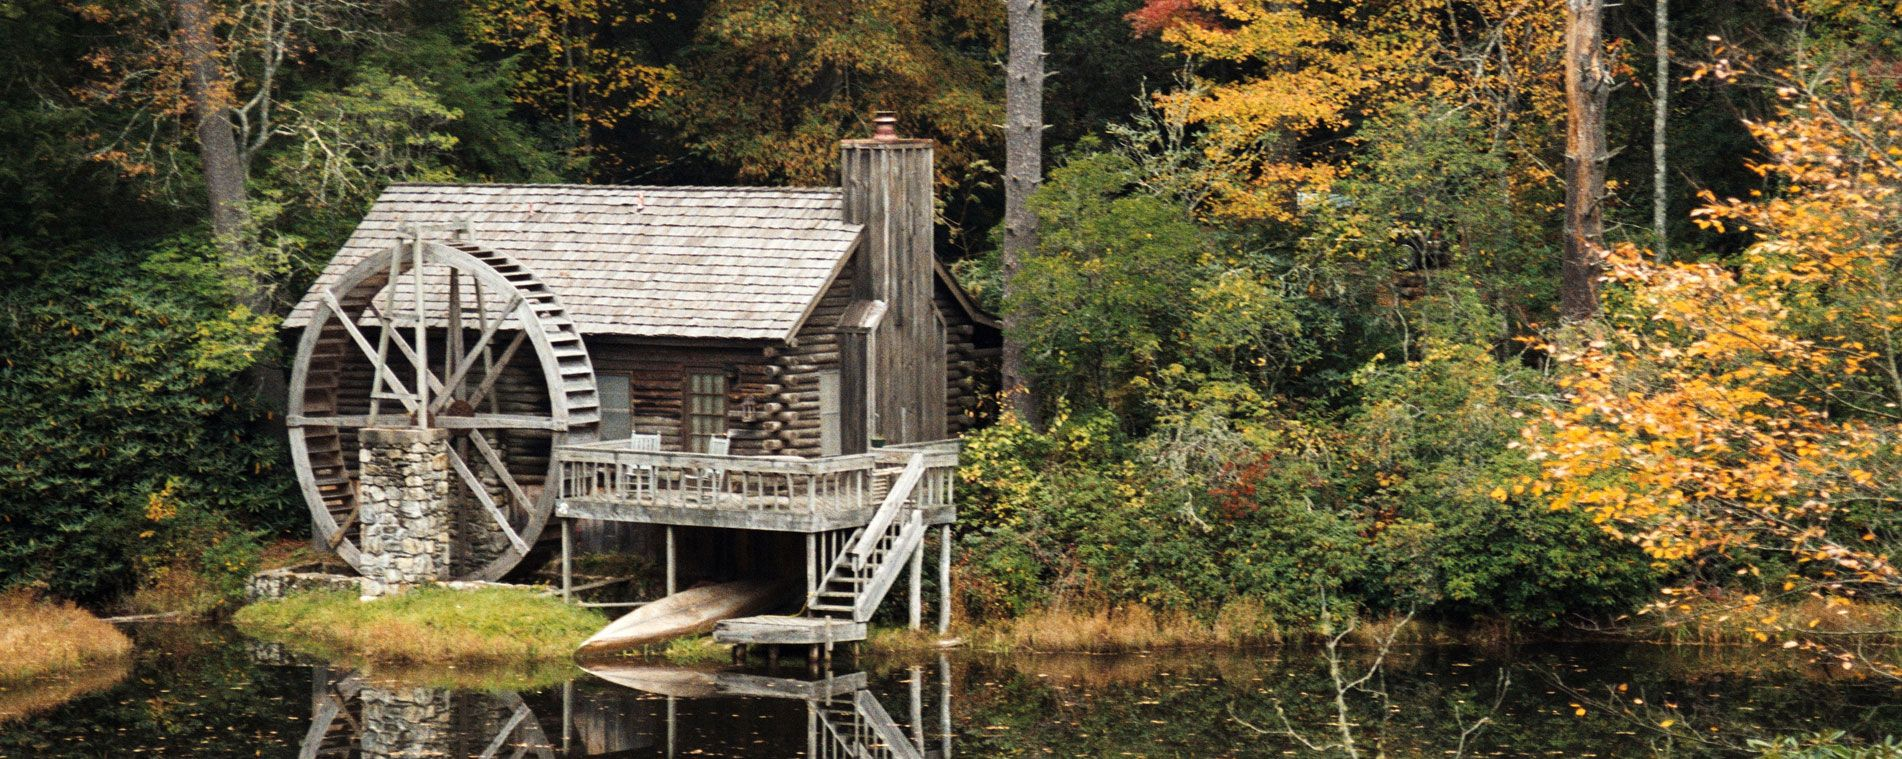 nc rent carolina north get directions county cove cabin jackson discover lodging little to for cabins